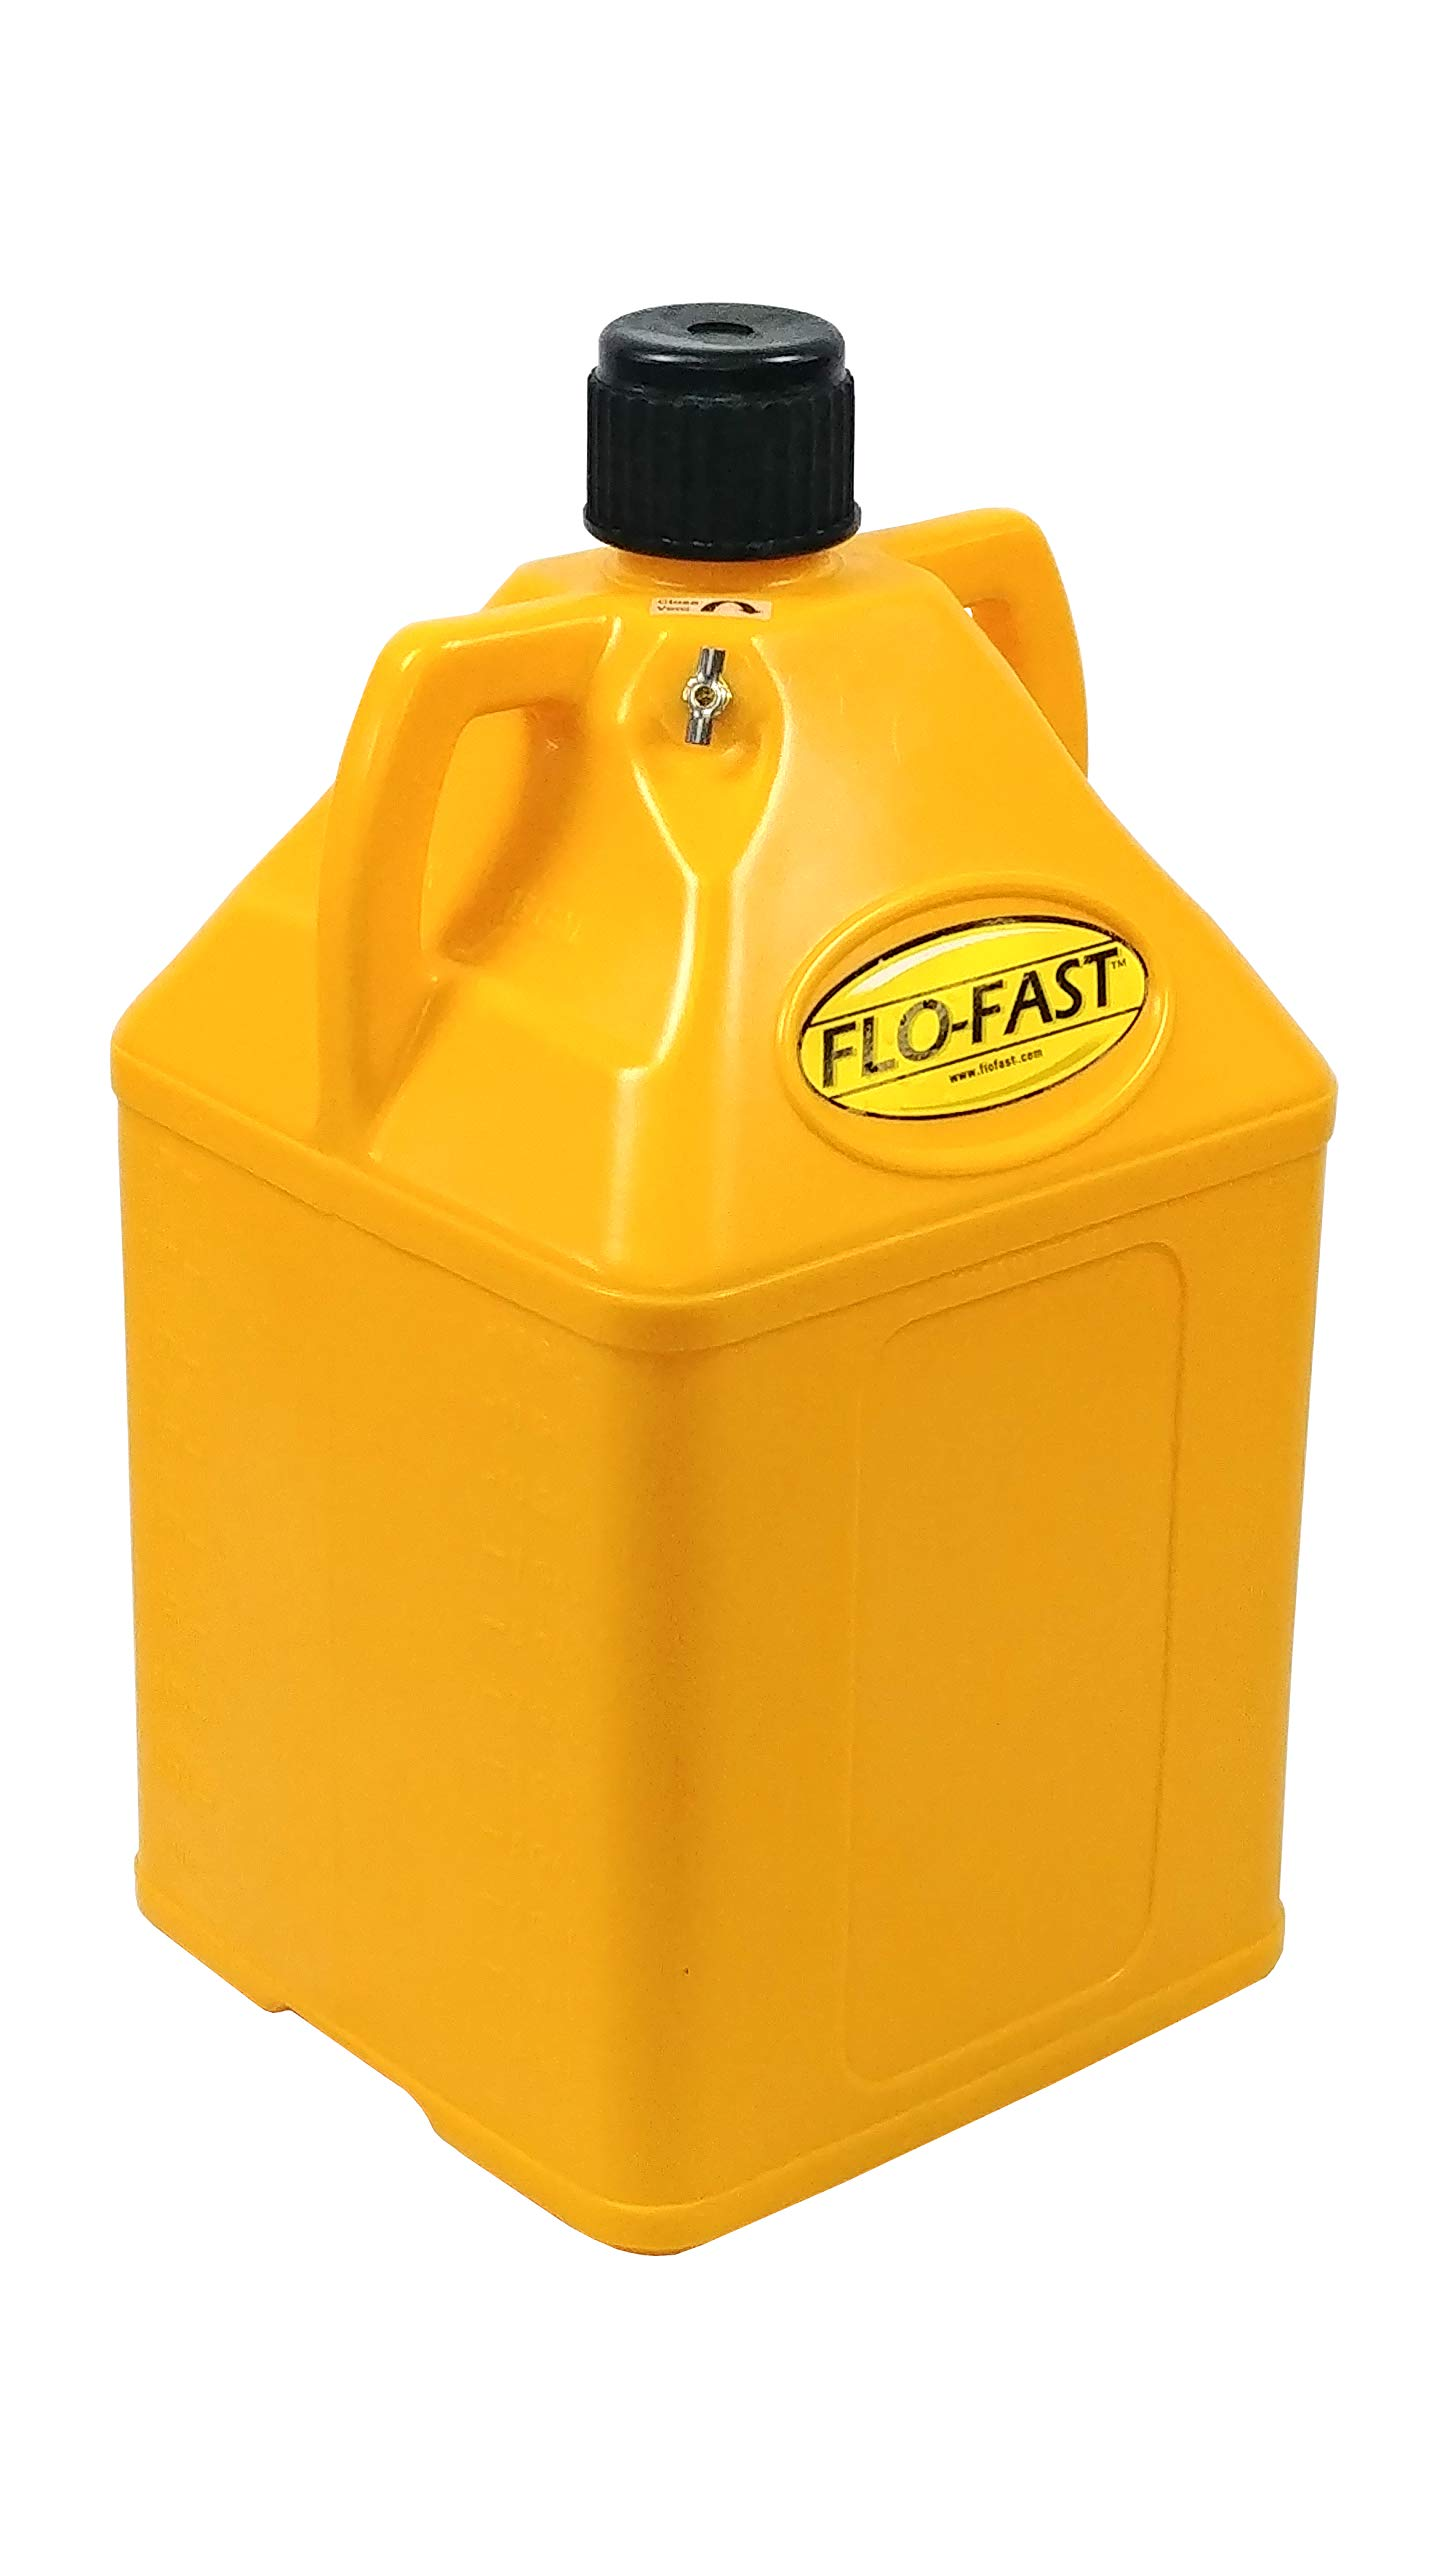 Flo-Fast 15504 15 Gallon Container